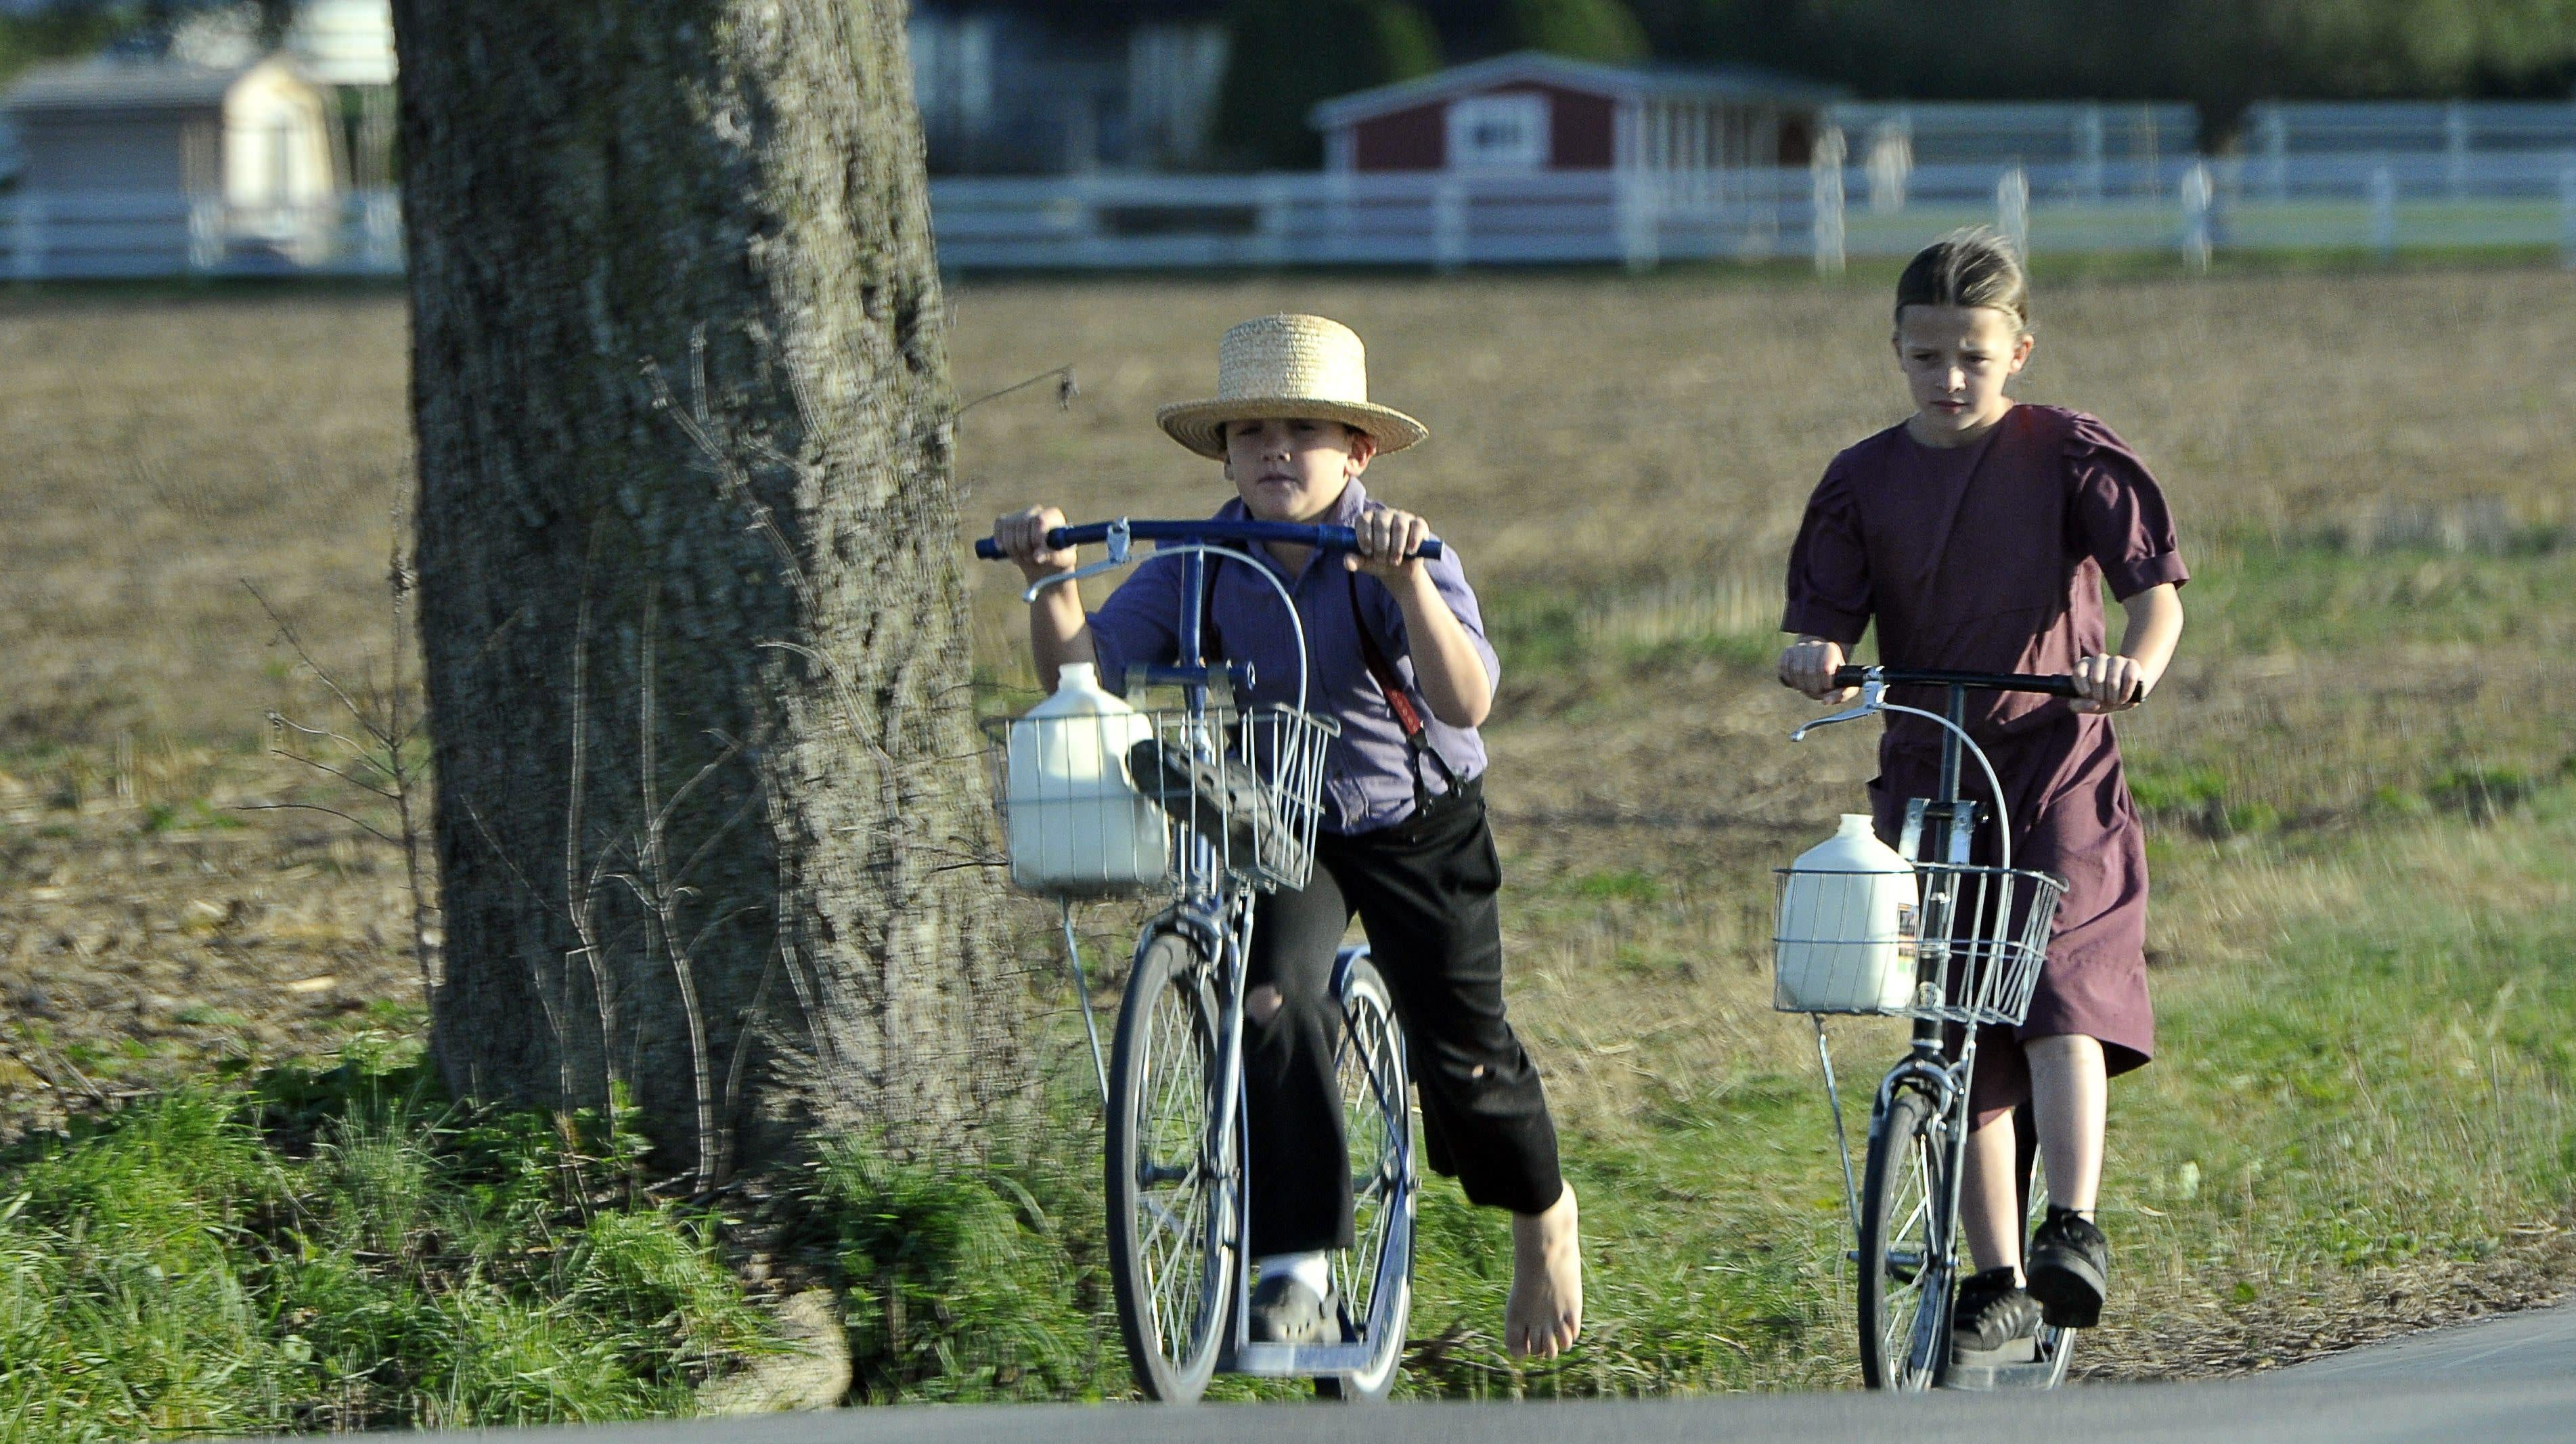 A Genetic Mutation Is Responsible For Mysterious Deaths In The Amish Community, Researchers Say